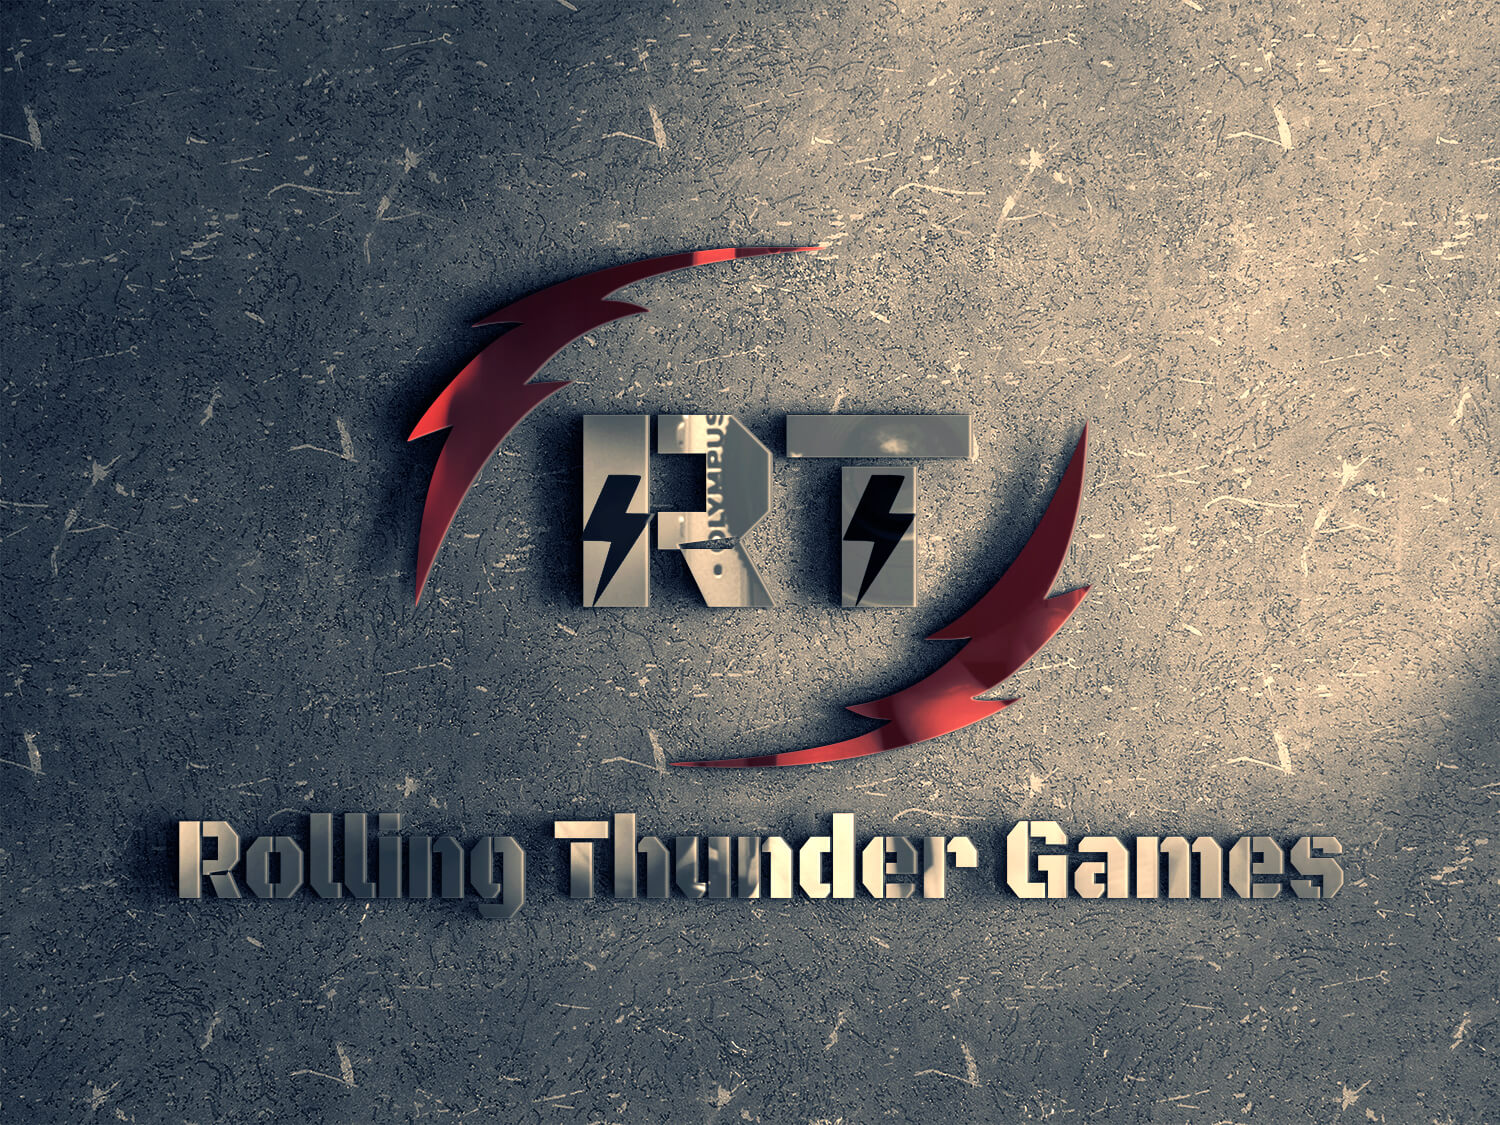 Rolling Thunder Games